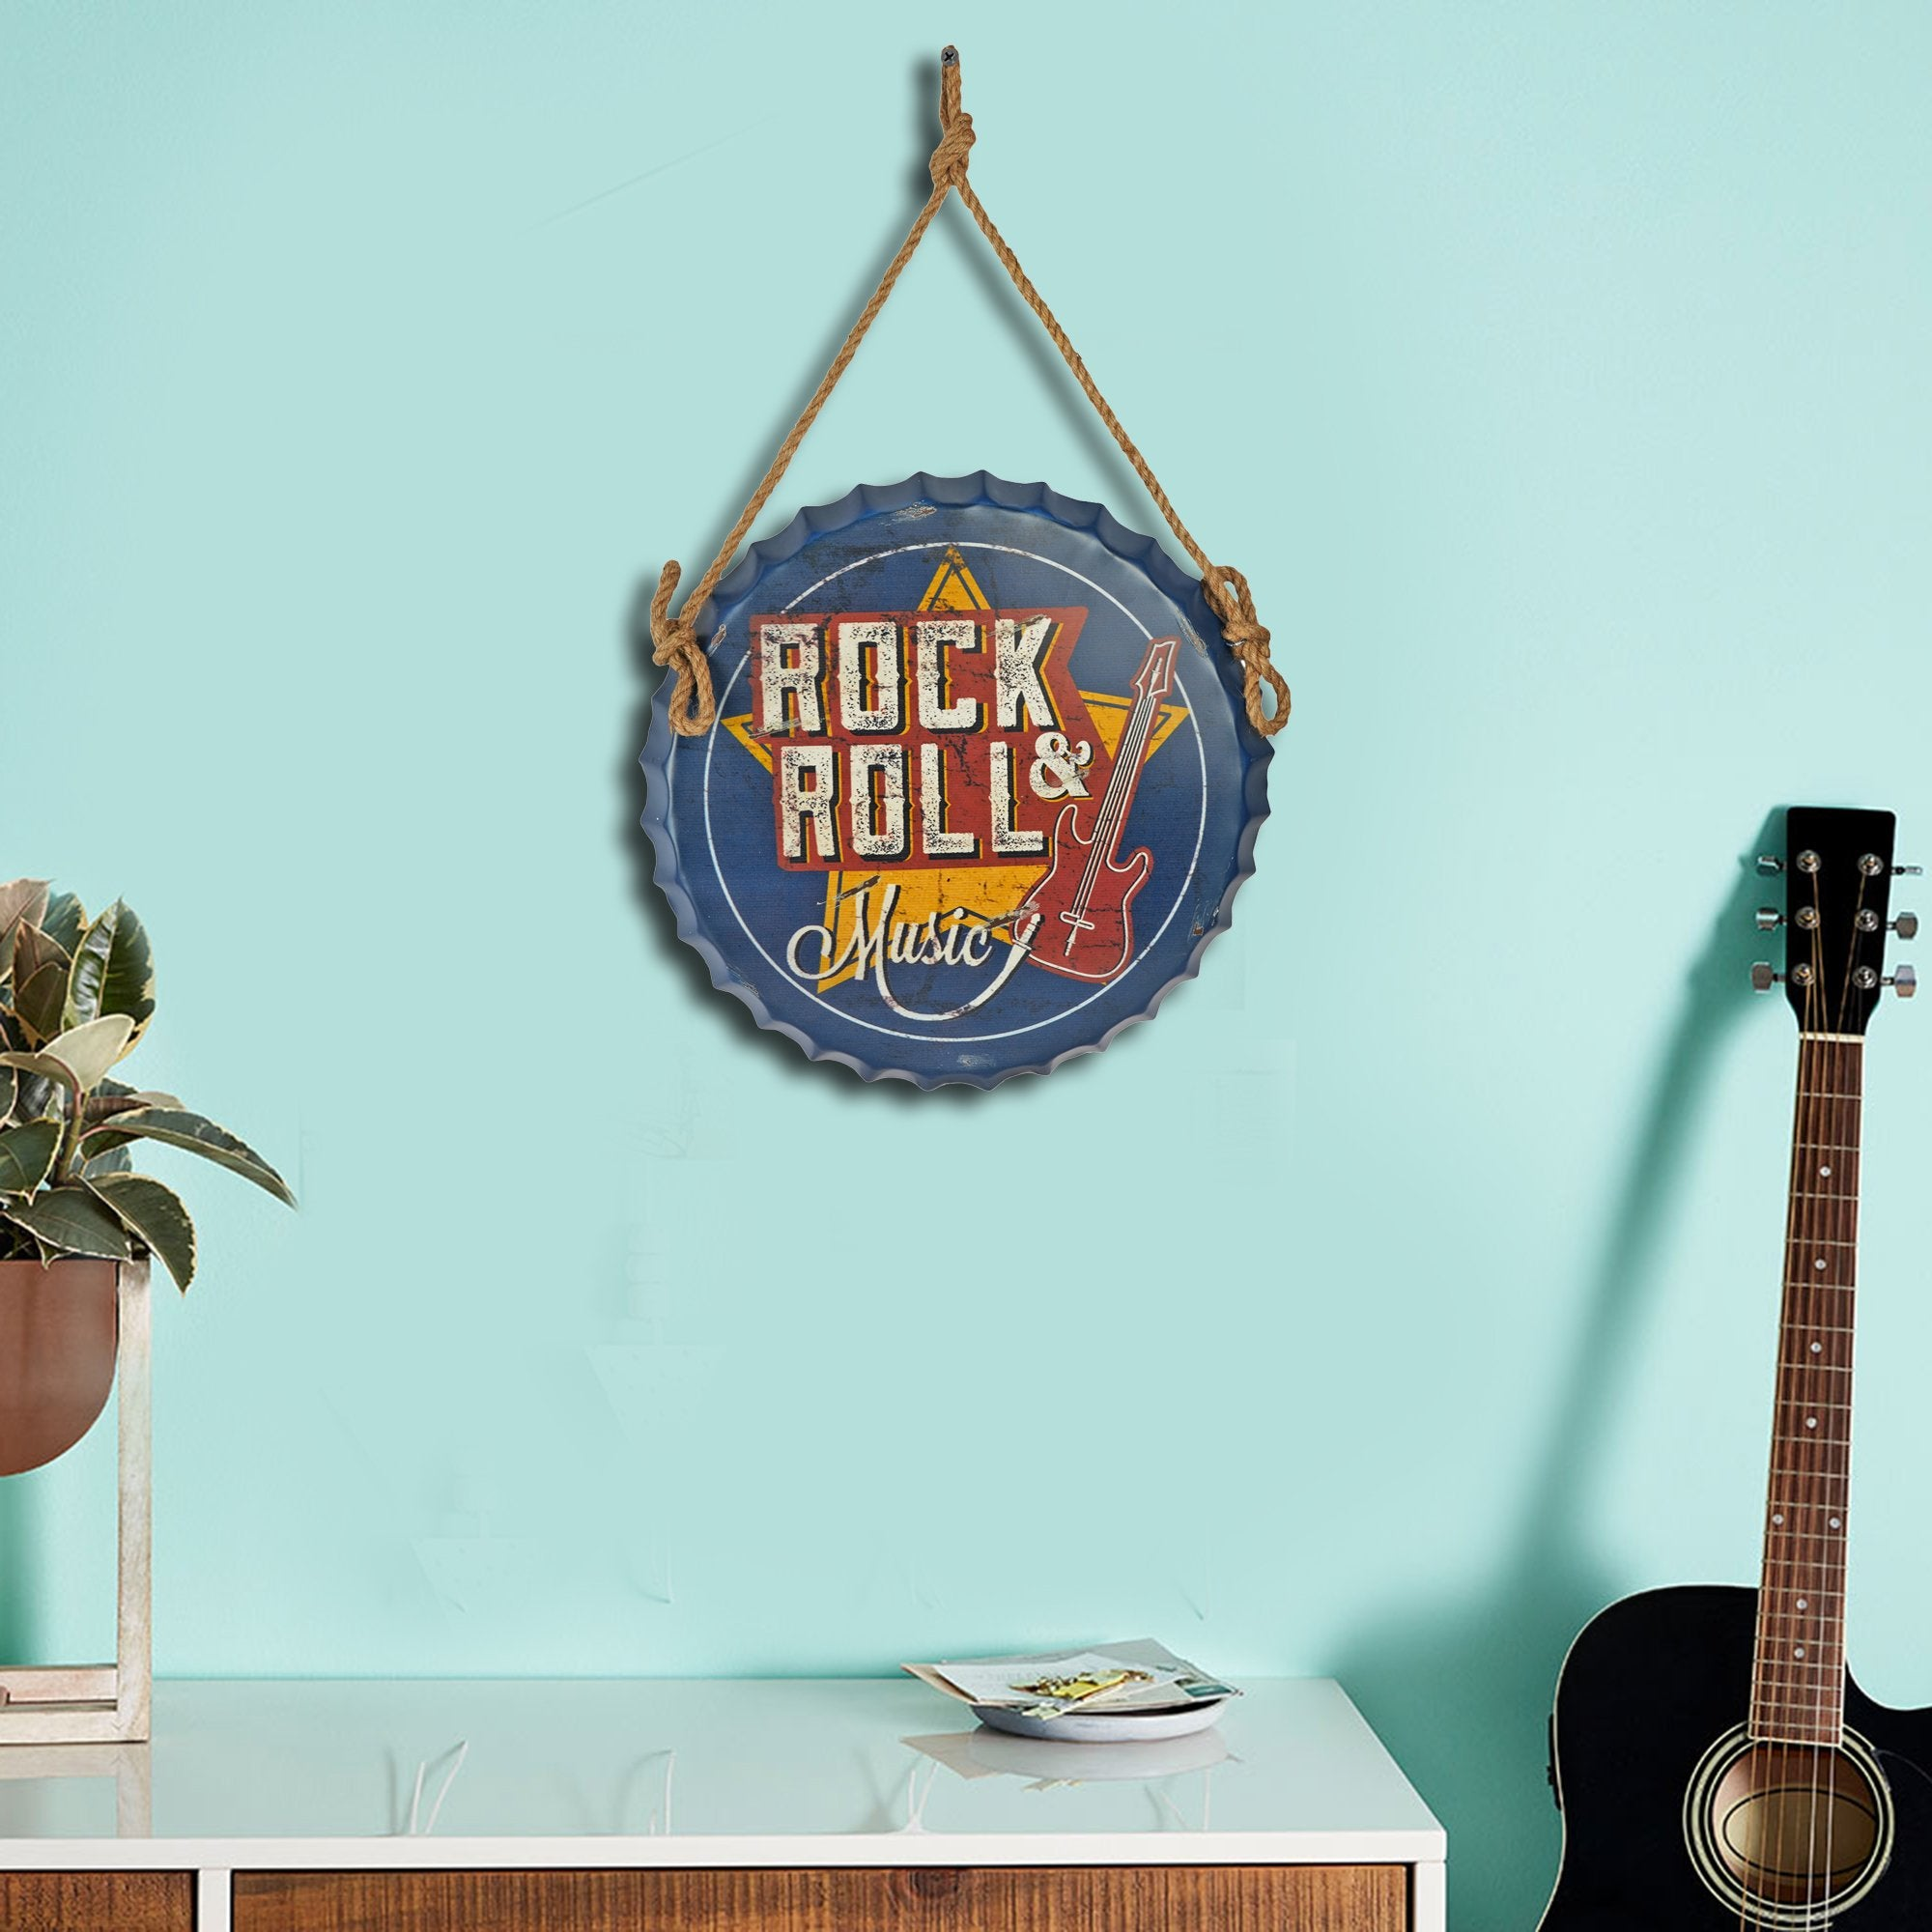 Rock 'n' Roll Wall Cap - Teak Tale